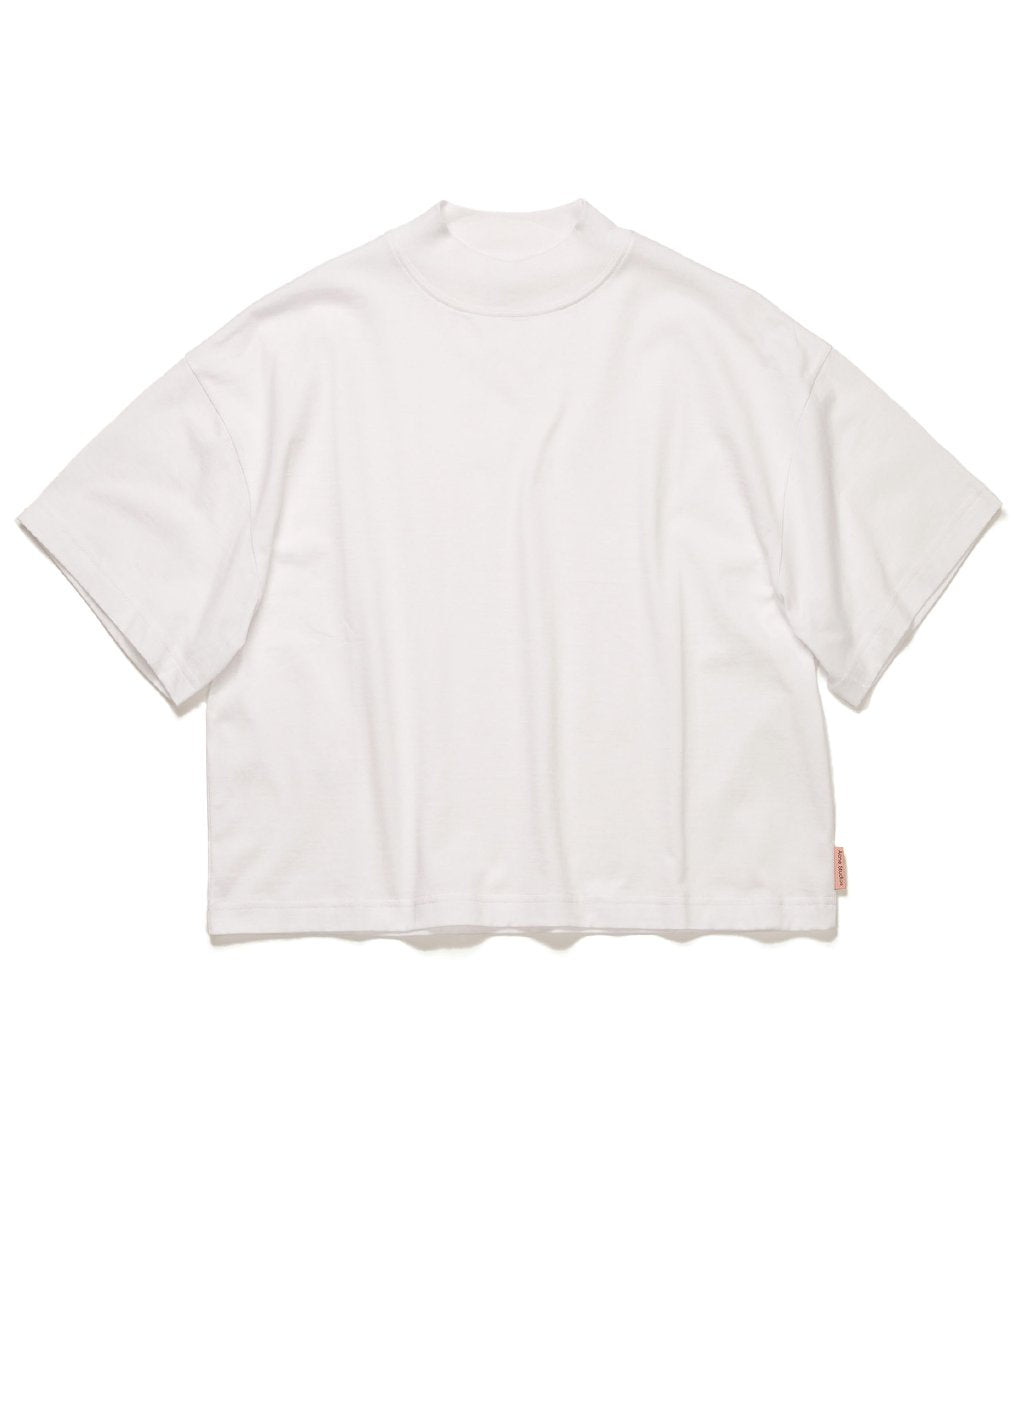 Acne Studios - Emirka Pink Label T-Shirt | Optic White